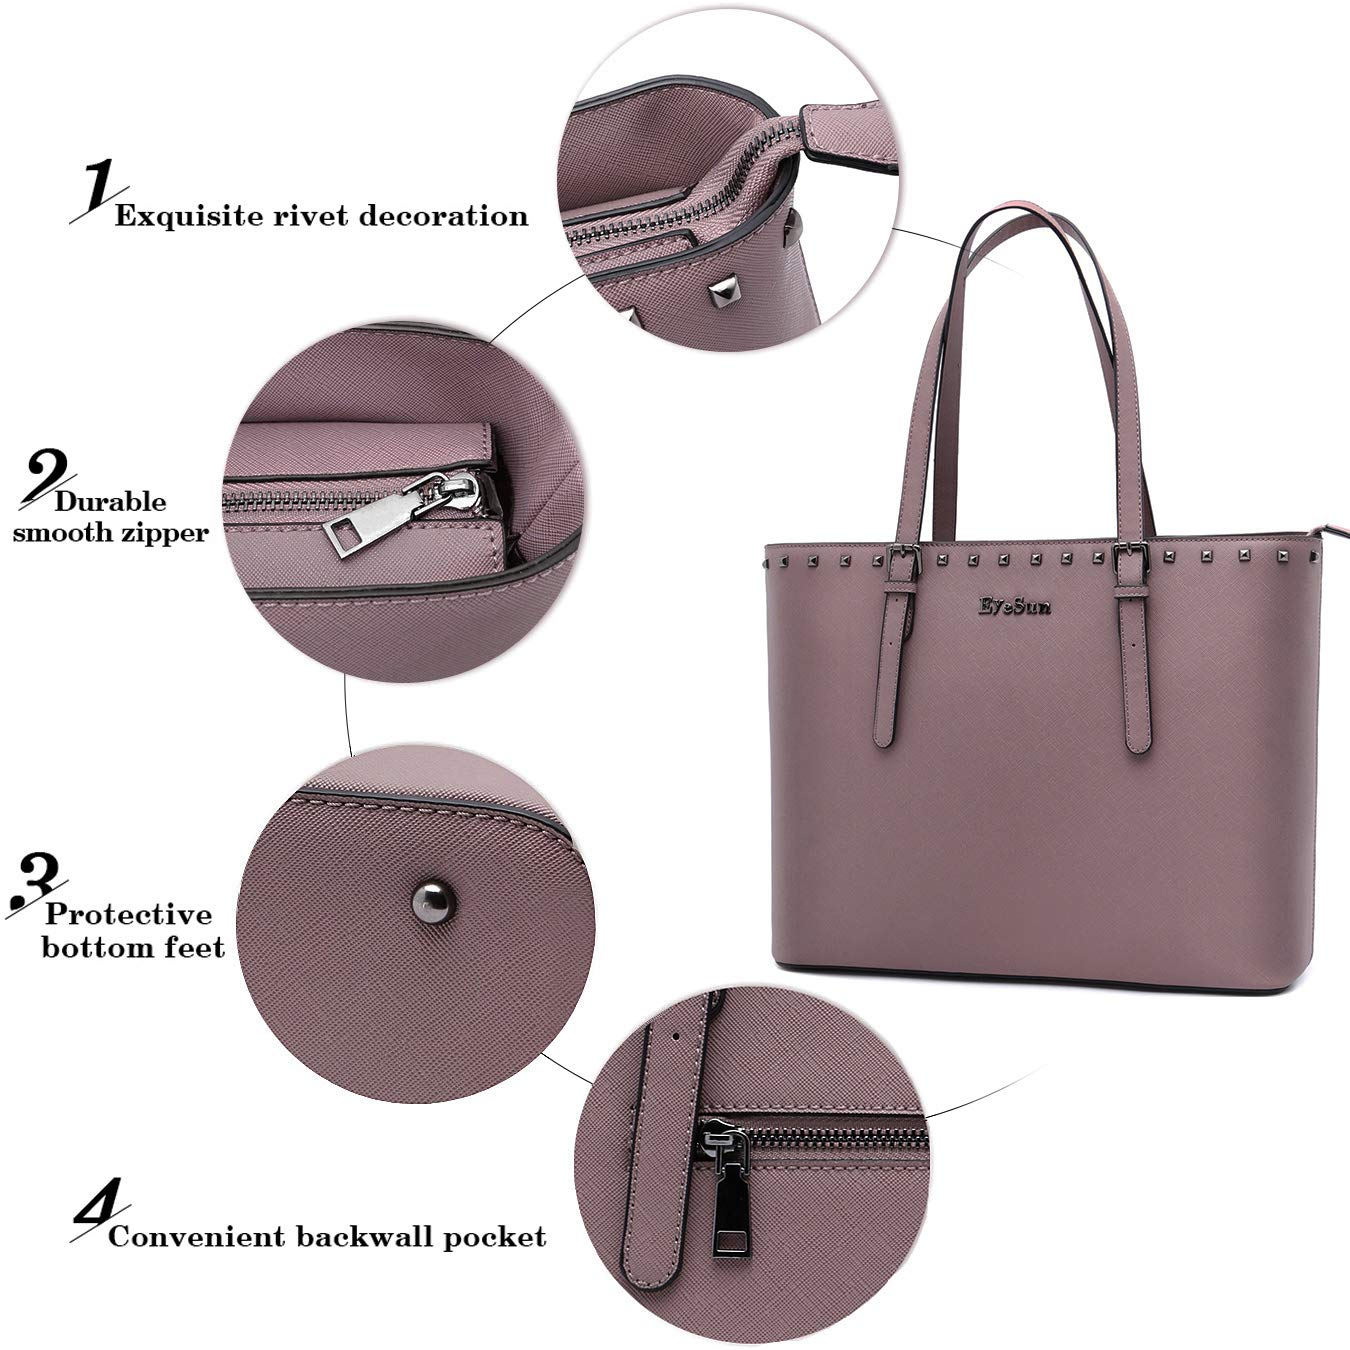 Laptop Bag for Women,15.6 Inch Laptop Tote Bag Office Briefcase with Adjustable Strap and Rivets(2013-purple) by EyeSun (Image #3)